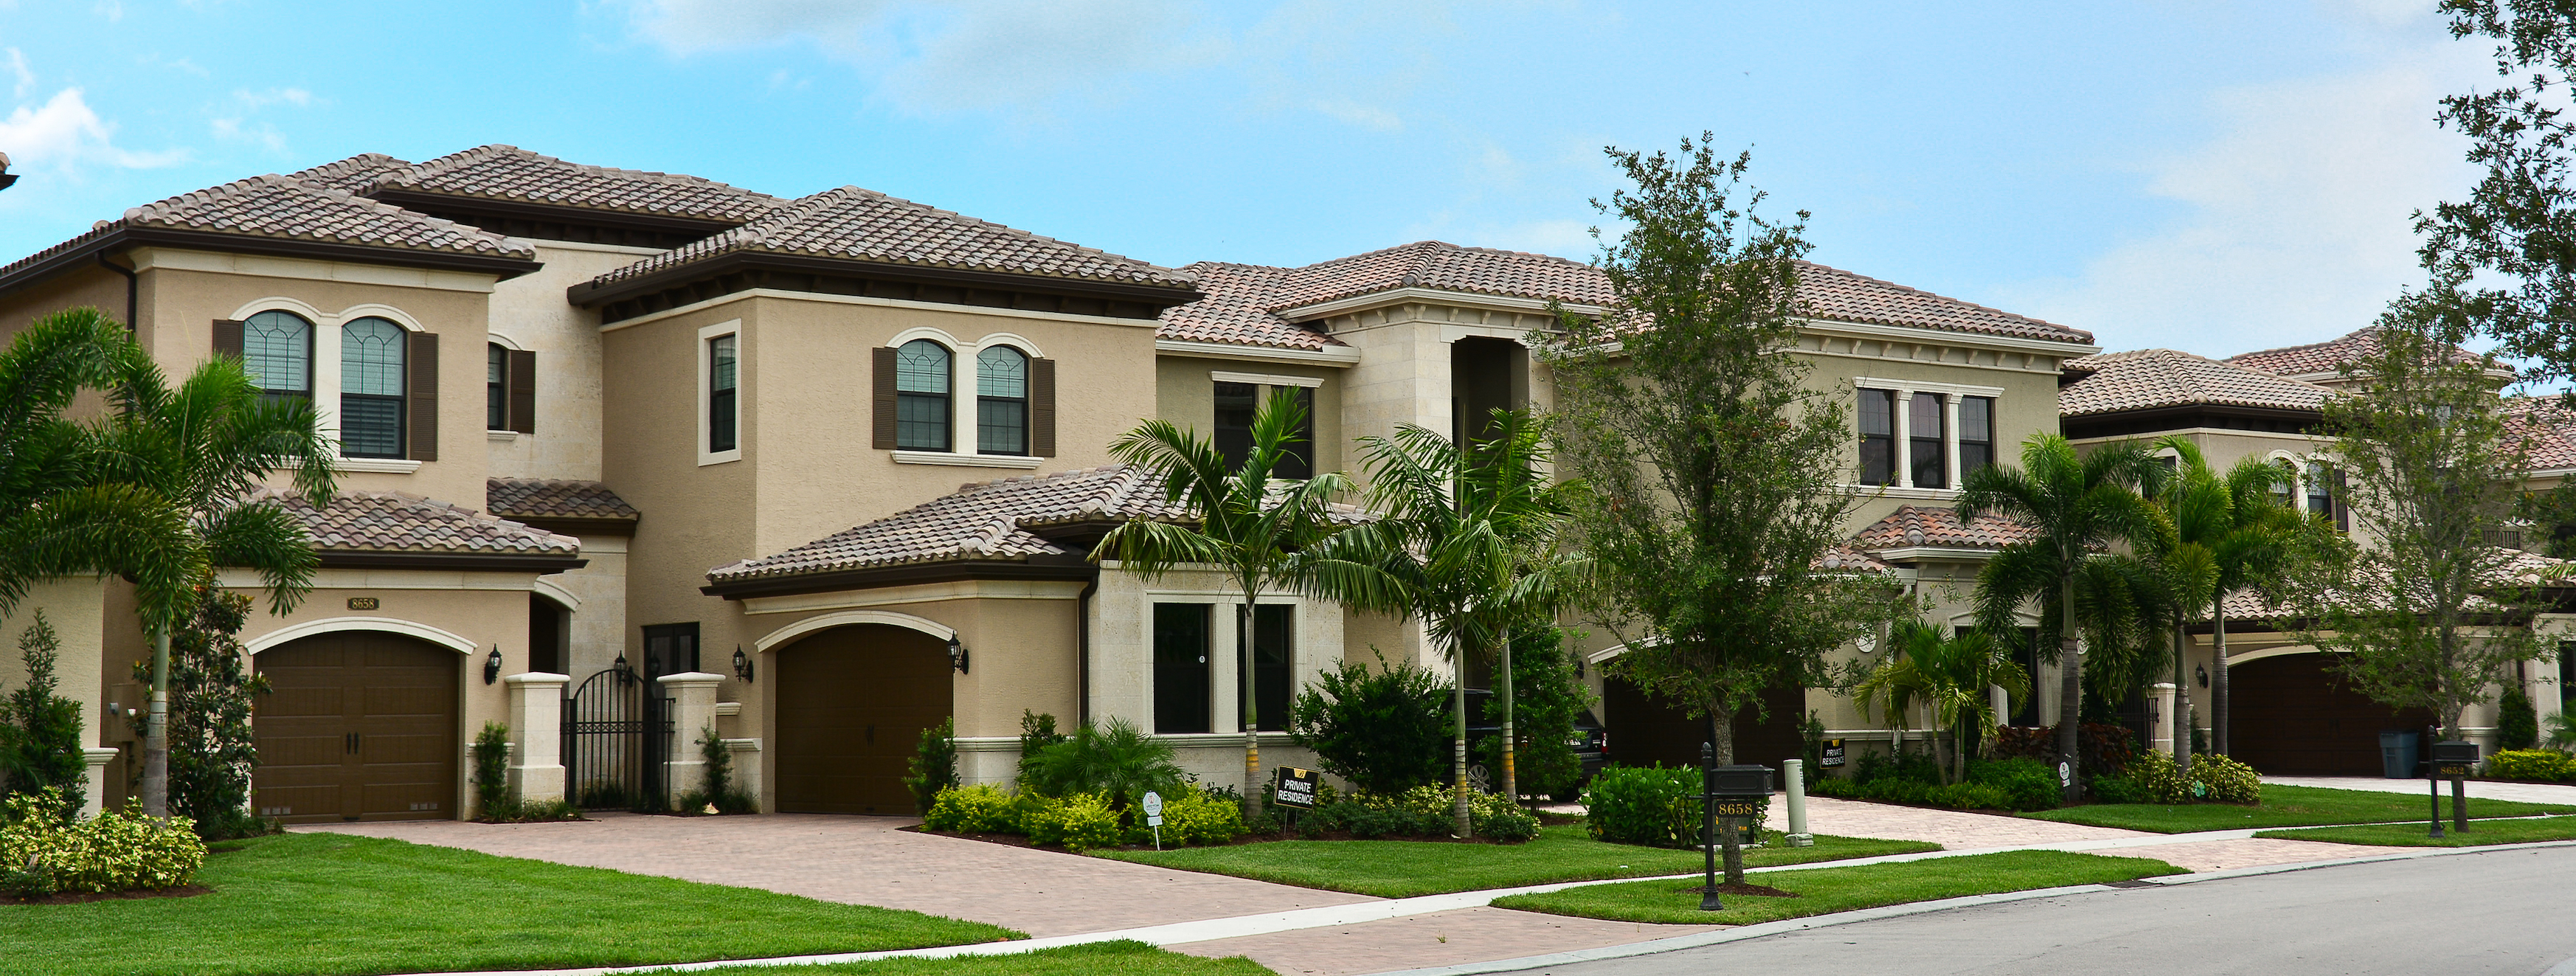 Surprising Boca Raton Homes For Sale Champagne Parisi Real Estate Home Interior And Landscaping Dextoversignezvosmurscom